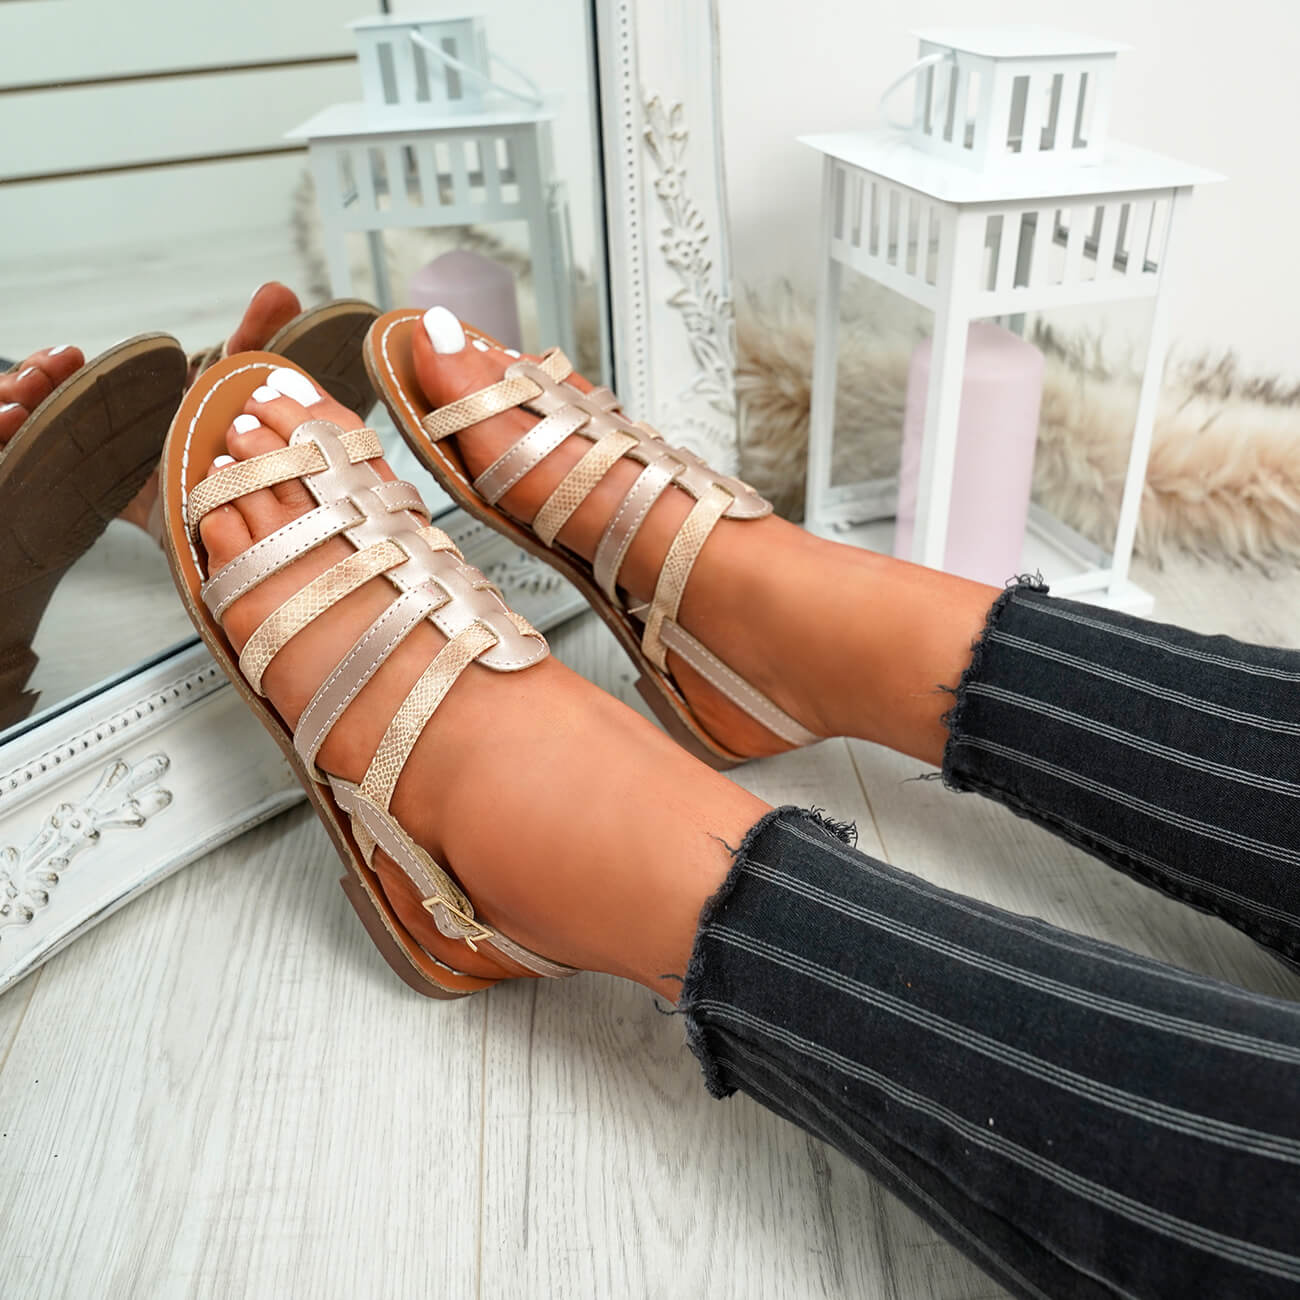 WOMENS-LADIES-BUCKLE-STRAP-FLAT-SUMMER-SANDALS-CASUAL-HOLIDAY-COMFY-SHOES-SIZE thumbnail 17